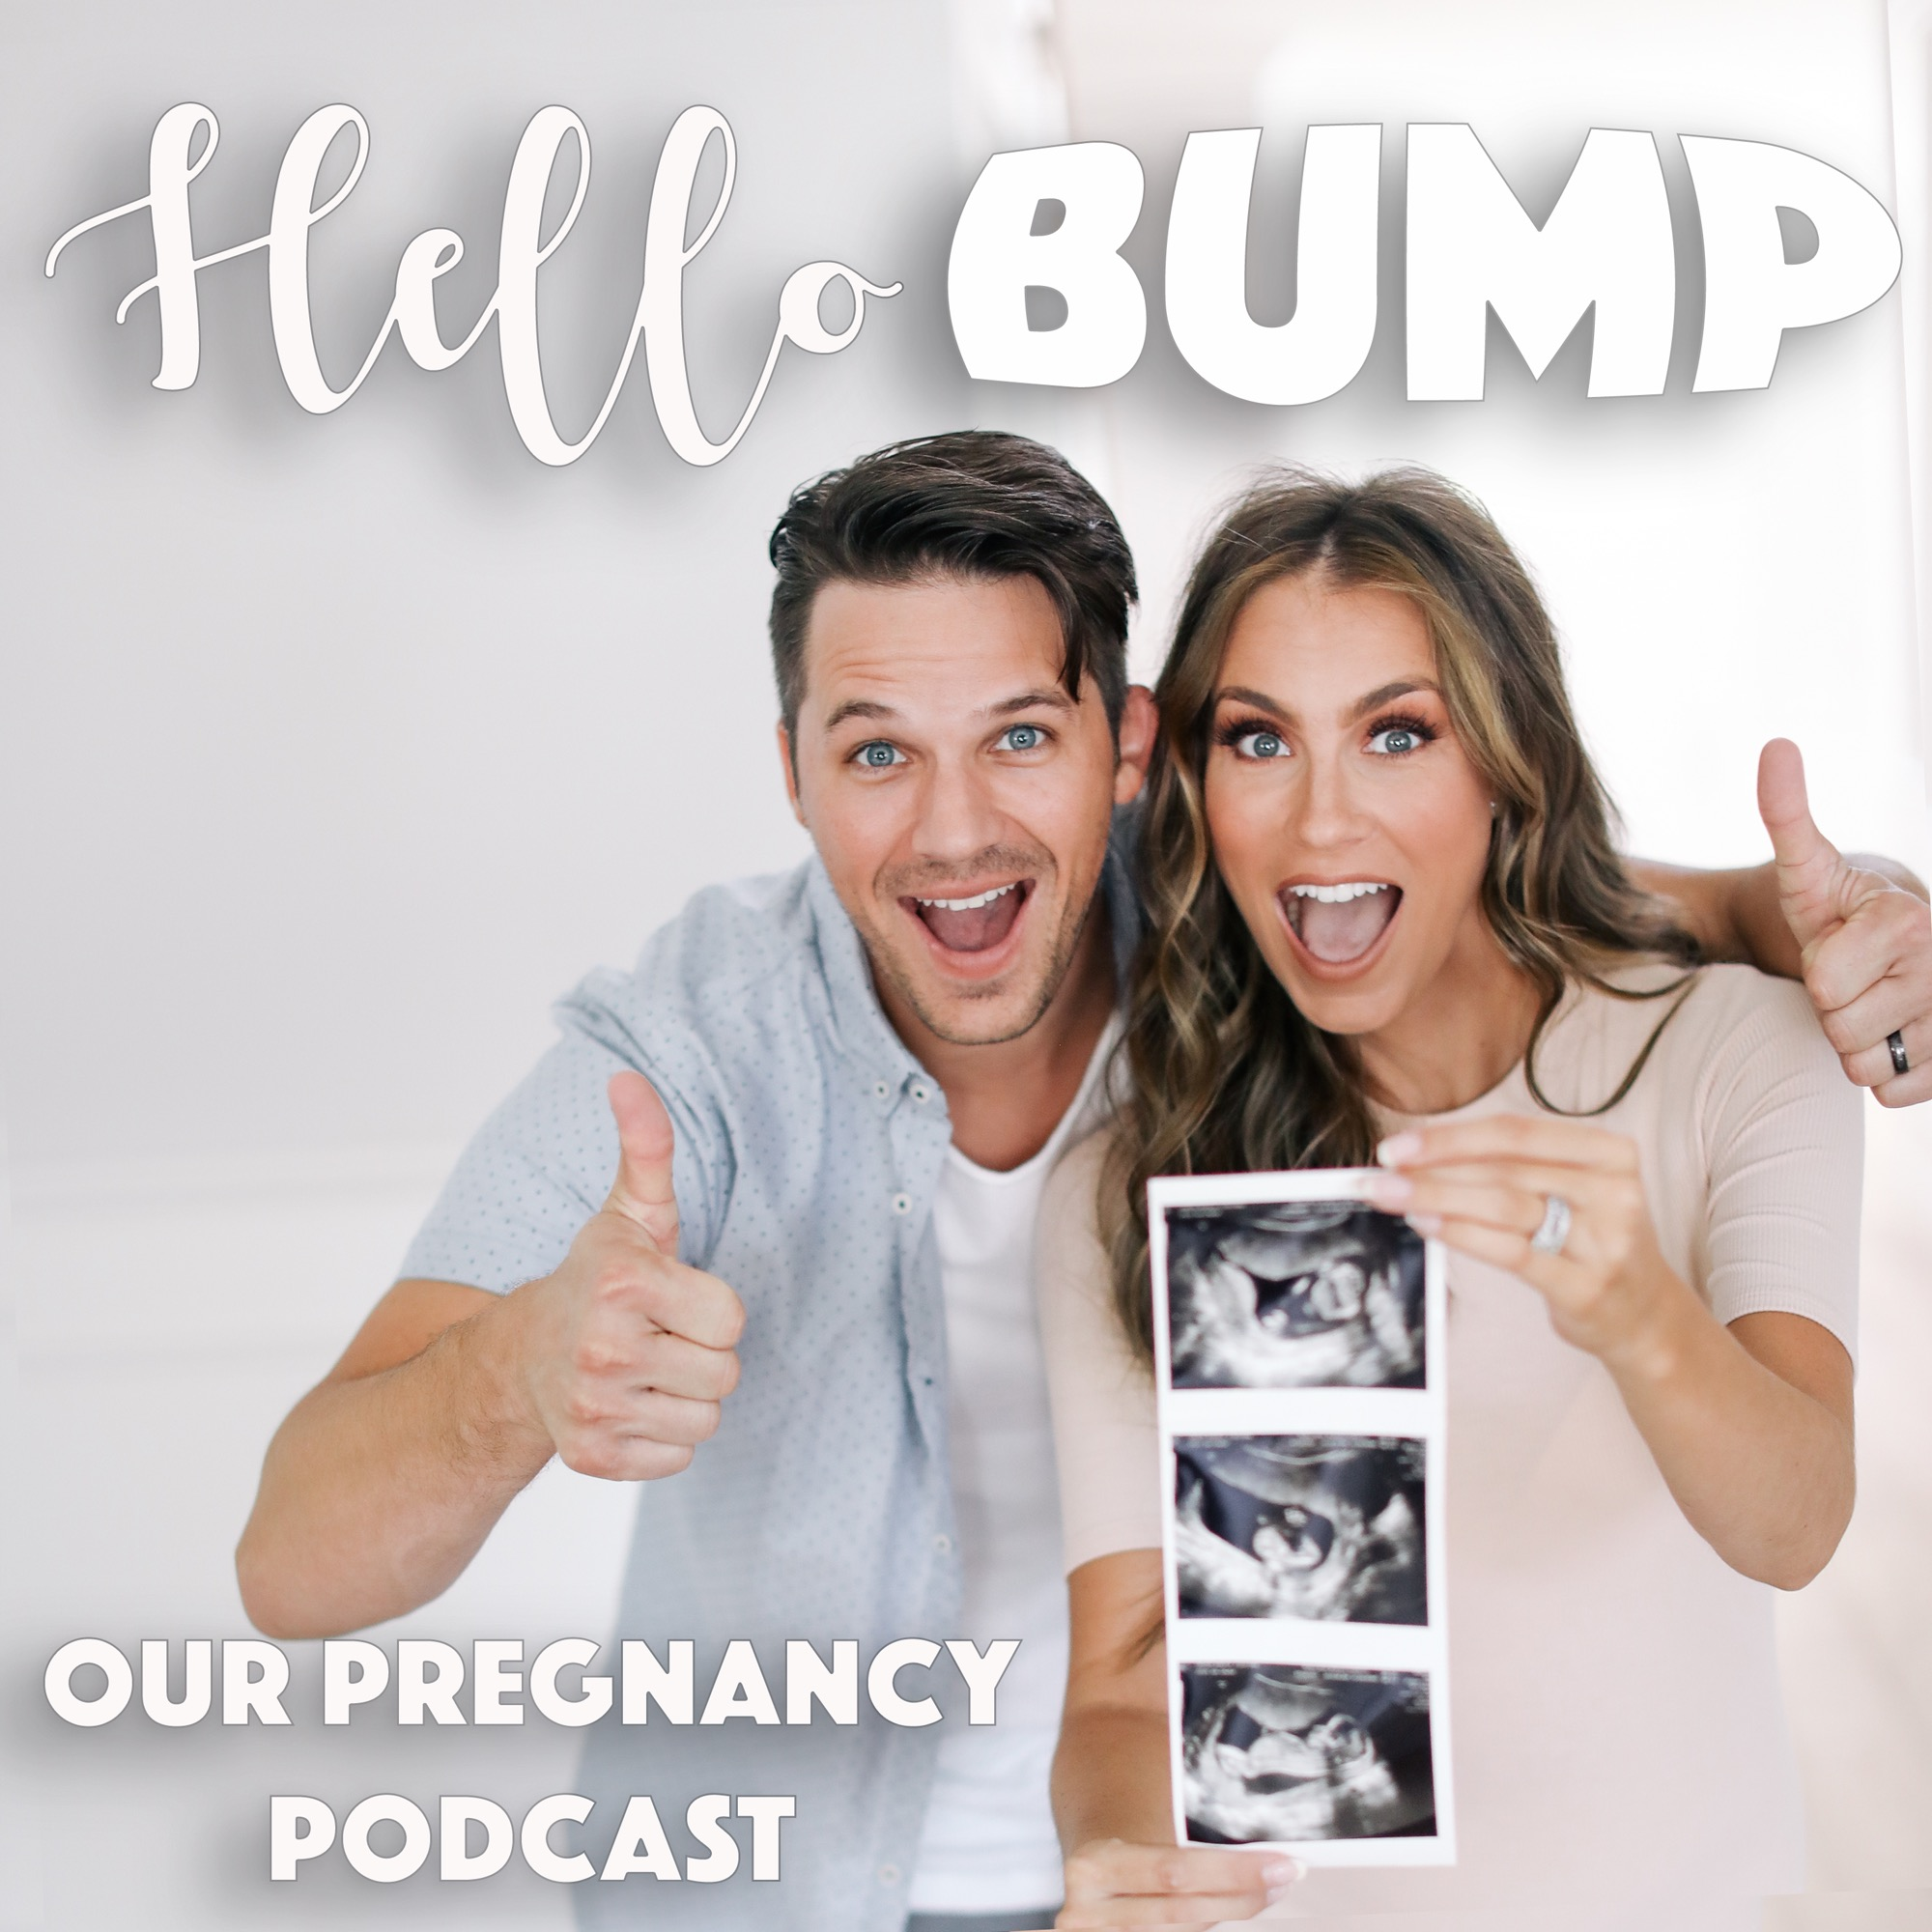 Hello Bump Podcast Episodes 2 & 3